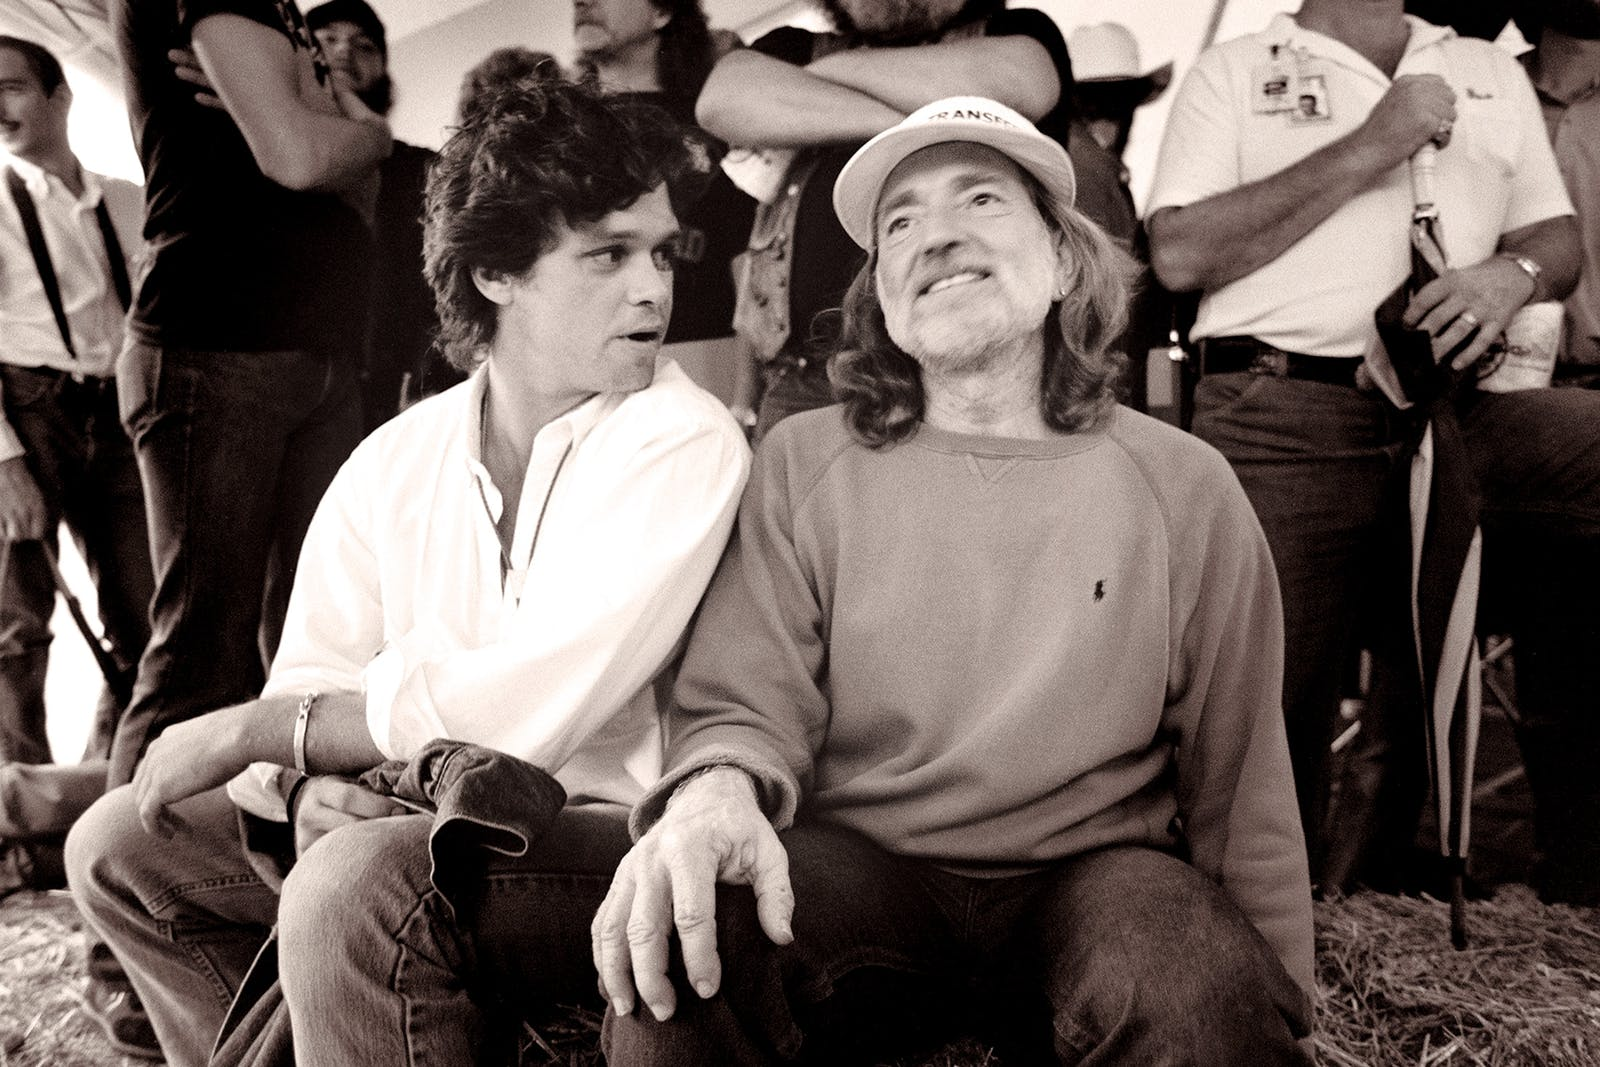 John Mellencamp and Willie Nelson at the first Farm Aid, in Champaign, Illinois, on September 22, 1985.